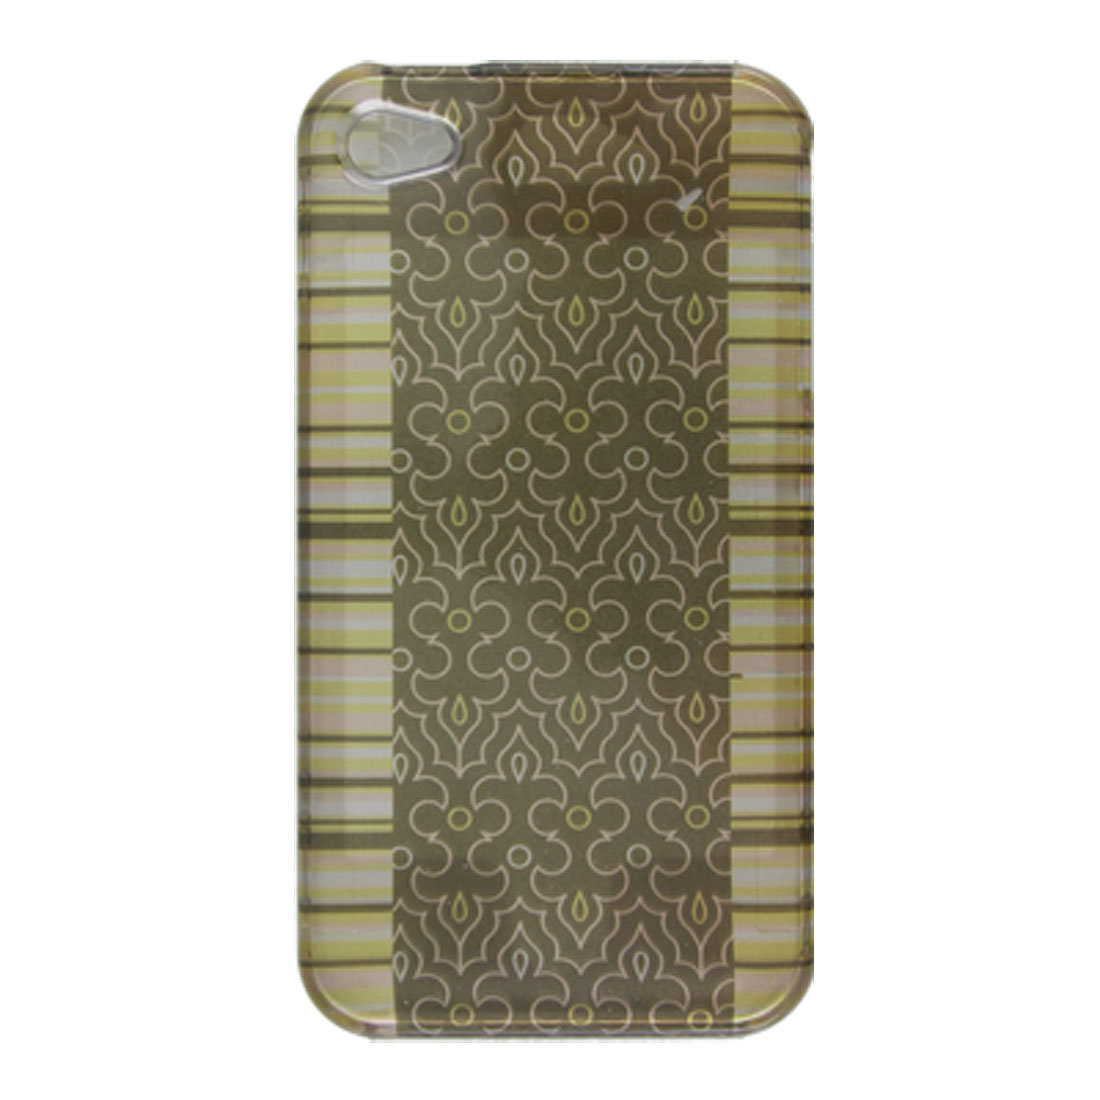 For Apple iPhone 4 4G Emboss Pattern Smooth Plastic Hard Housing Case